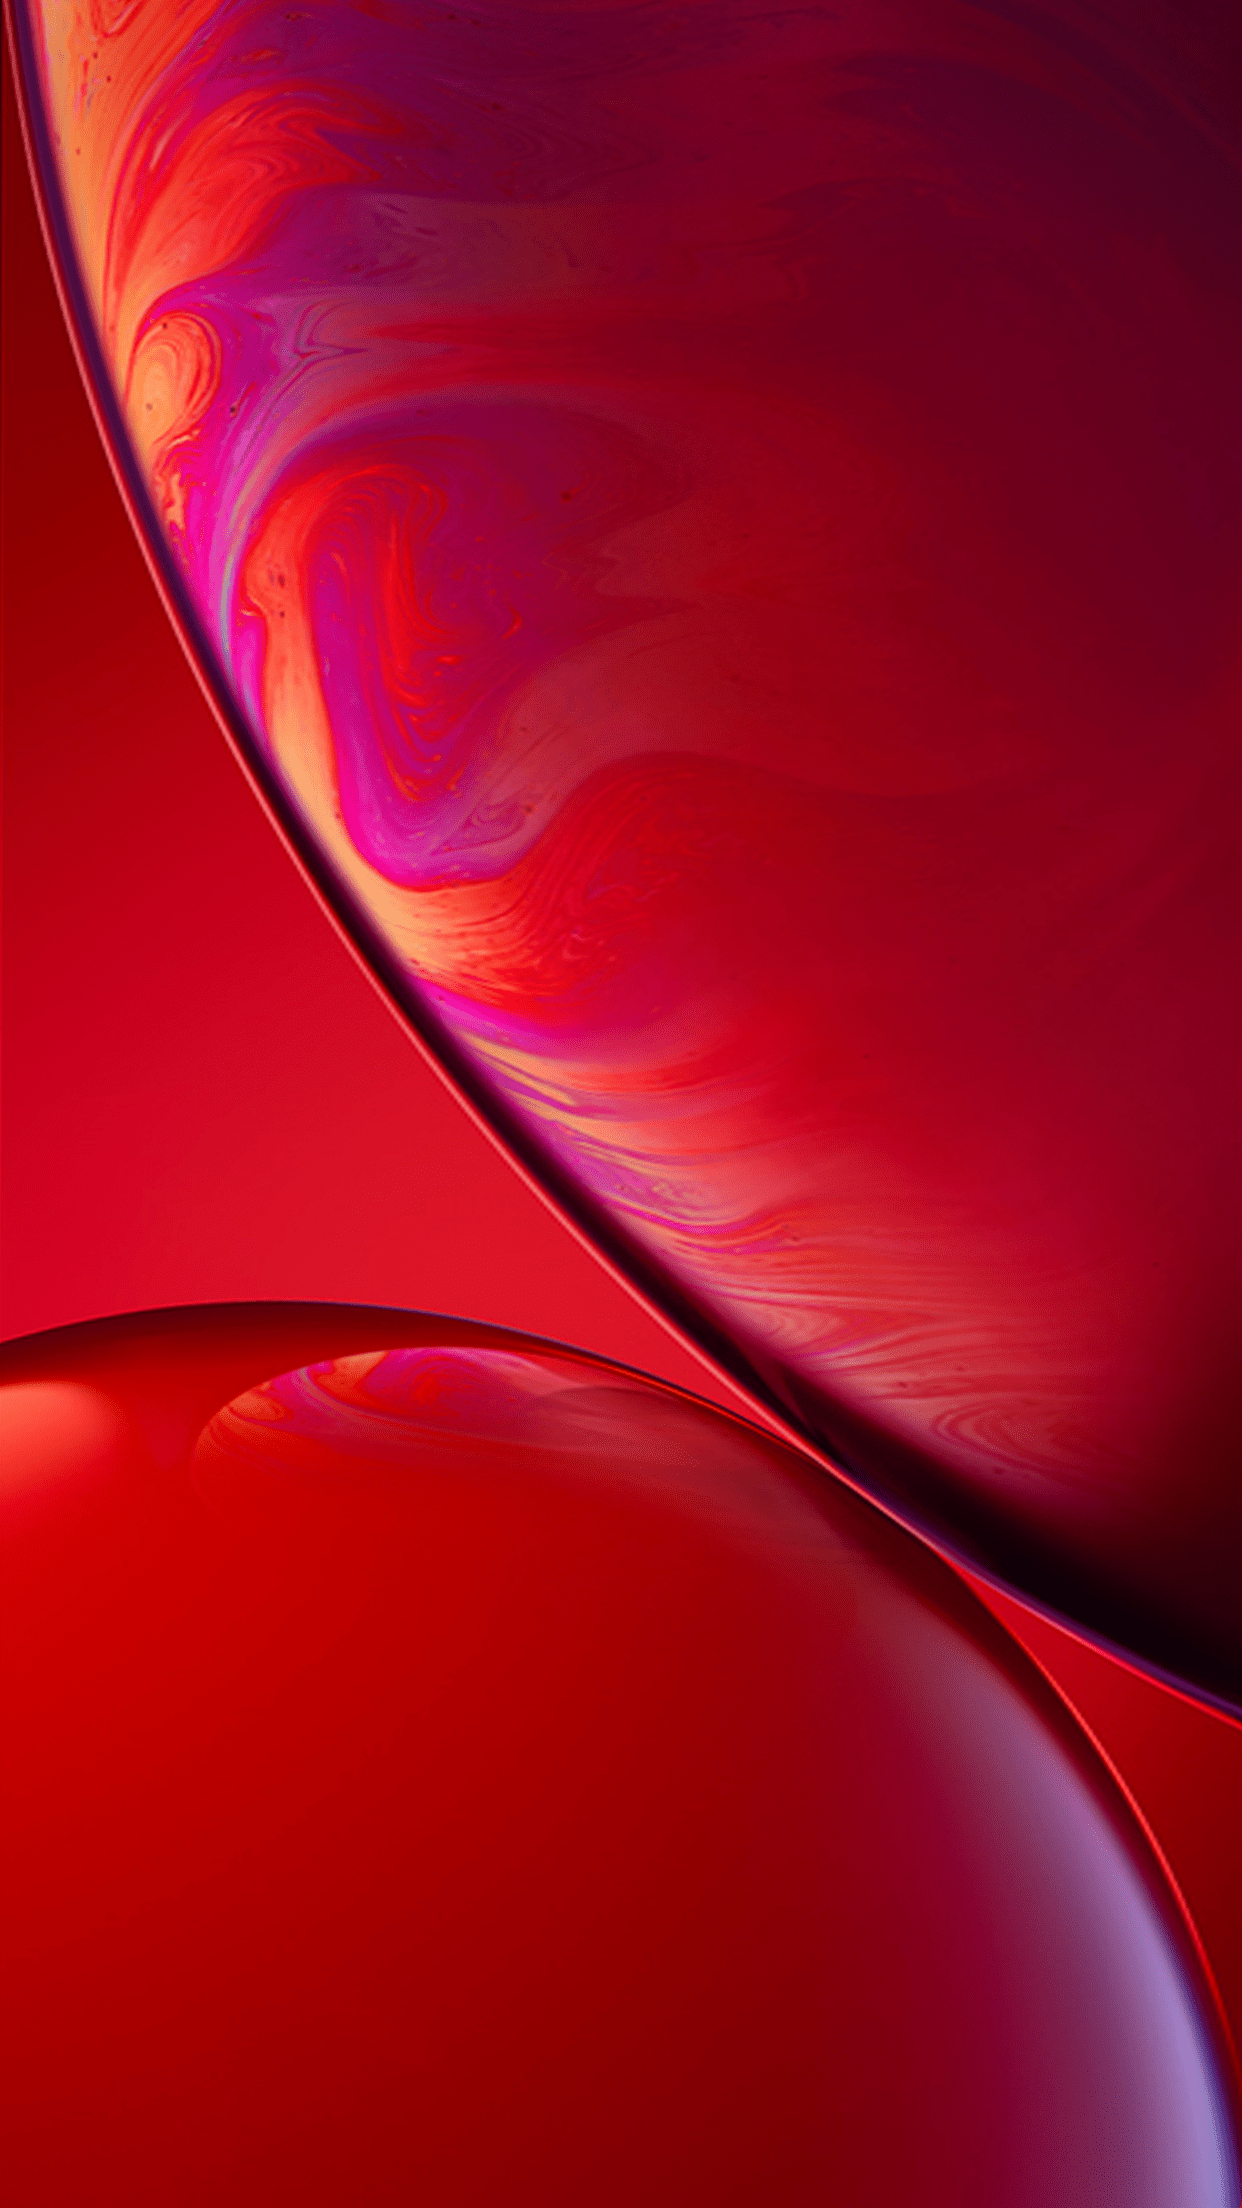 خلفيات ايفون اكس اس ماكس Iphone Xs Max Wallpapers Tecnologis Iphone Red Wallpaper Original Iphone Wallpaper Apple Wallpaper Iphone